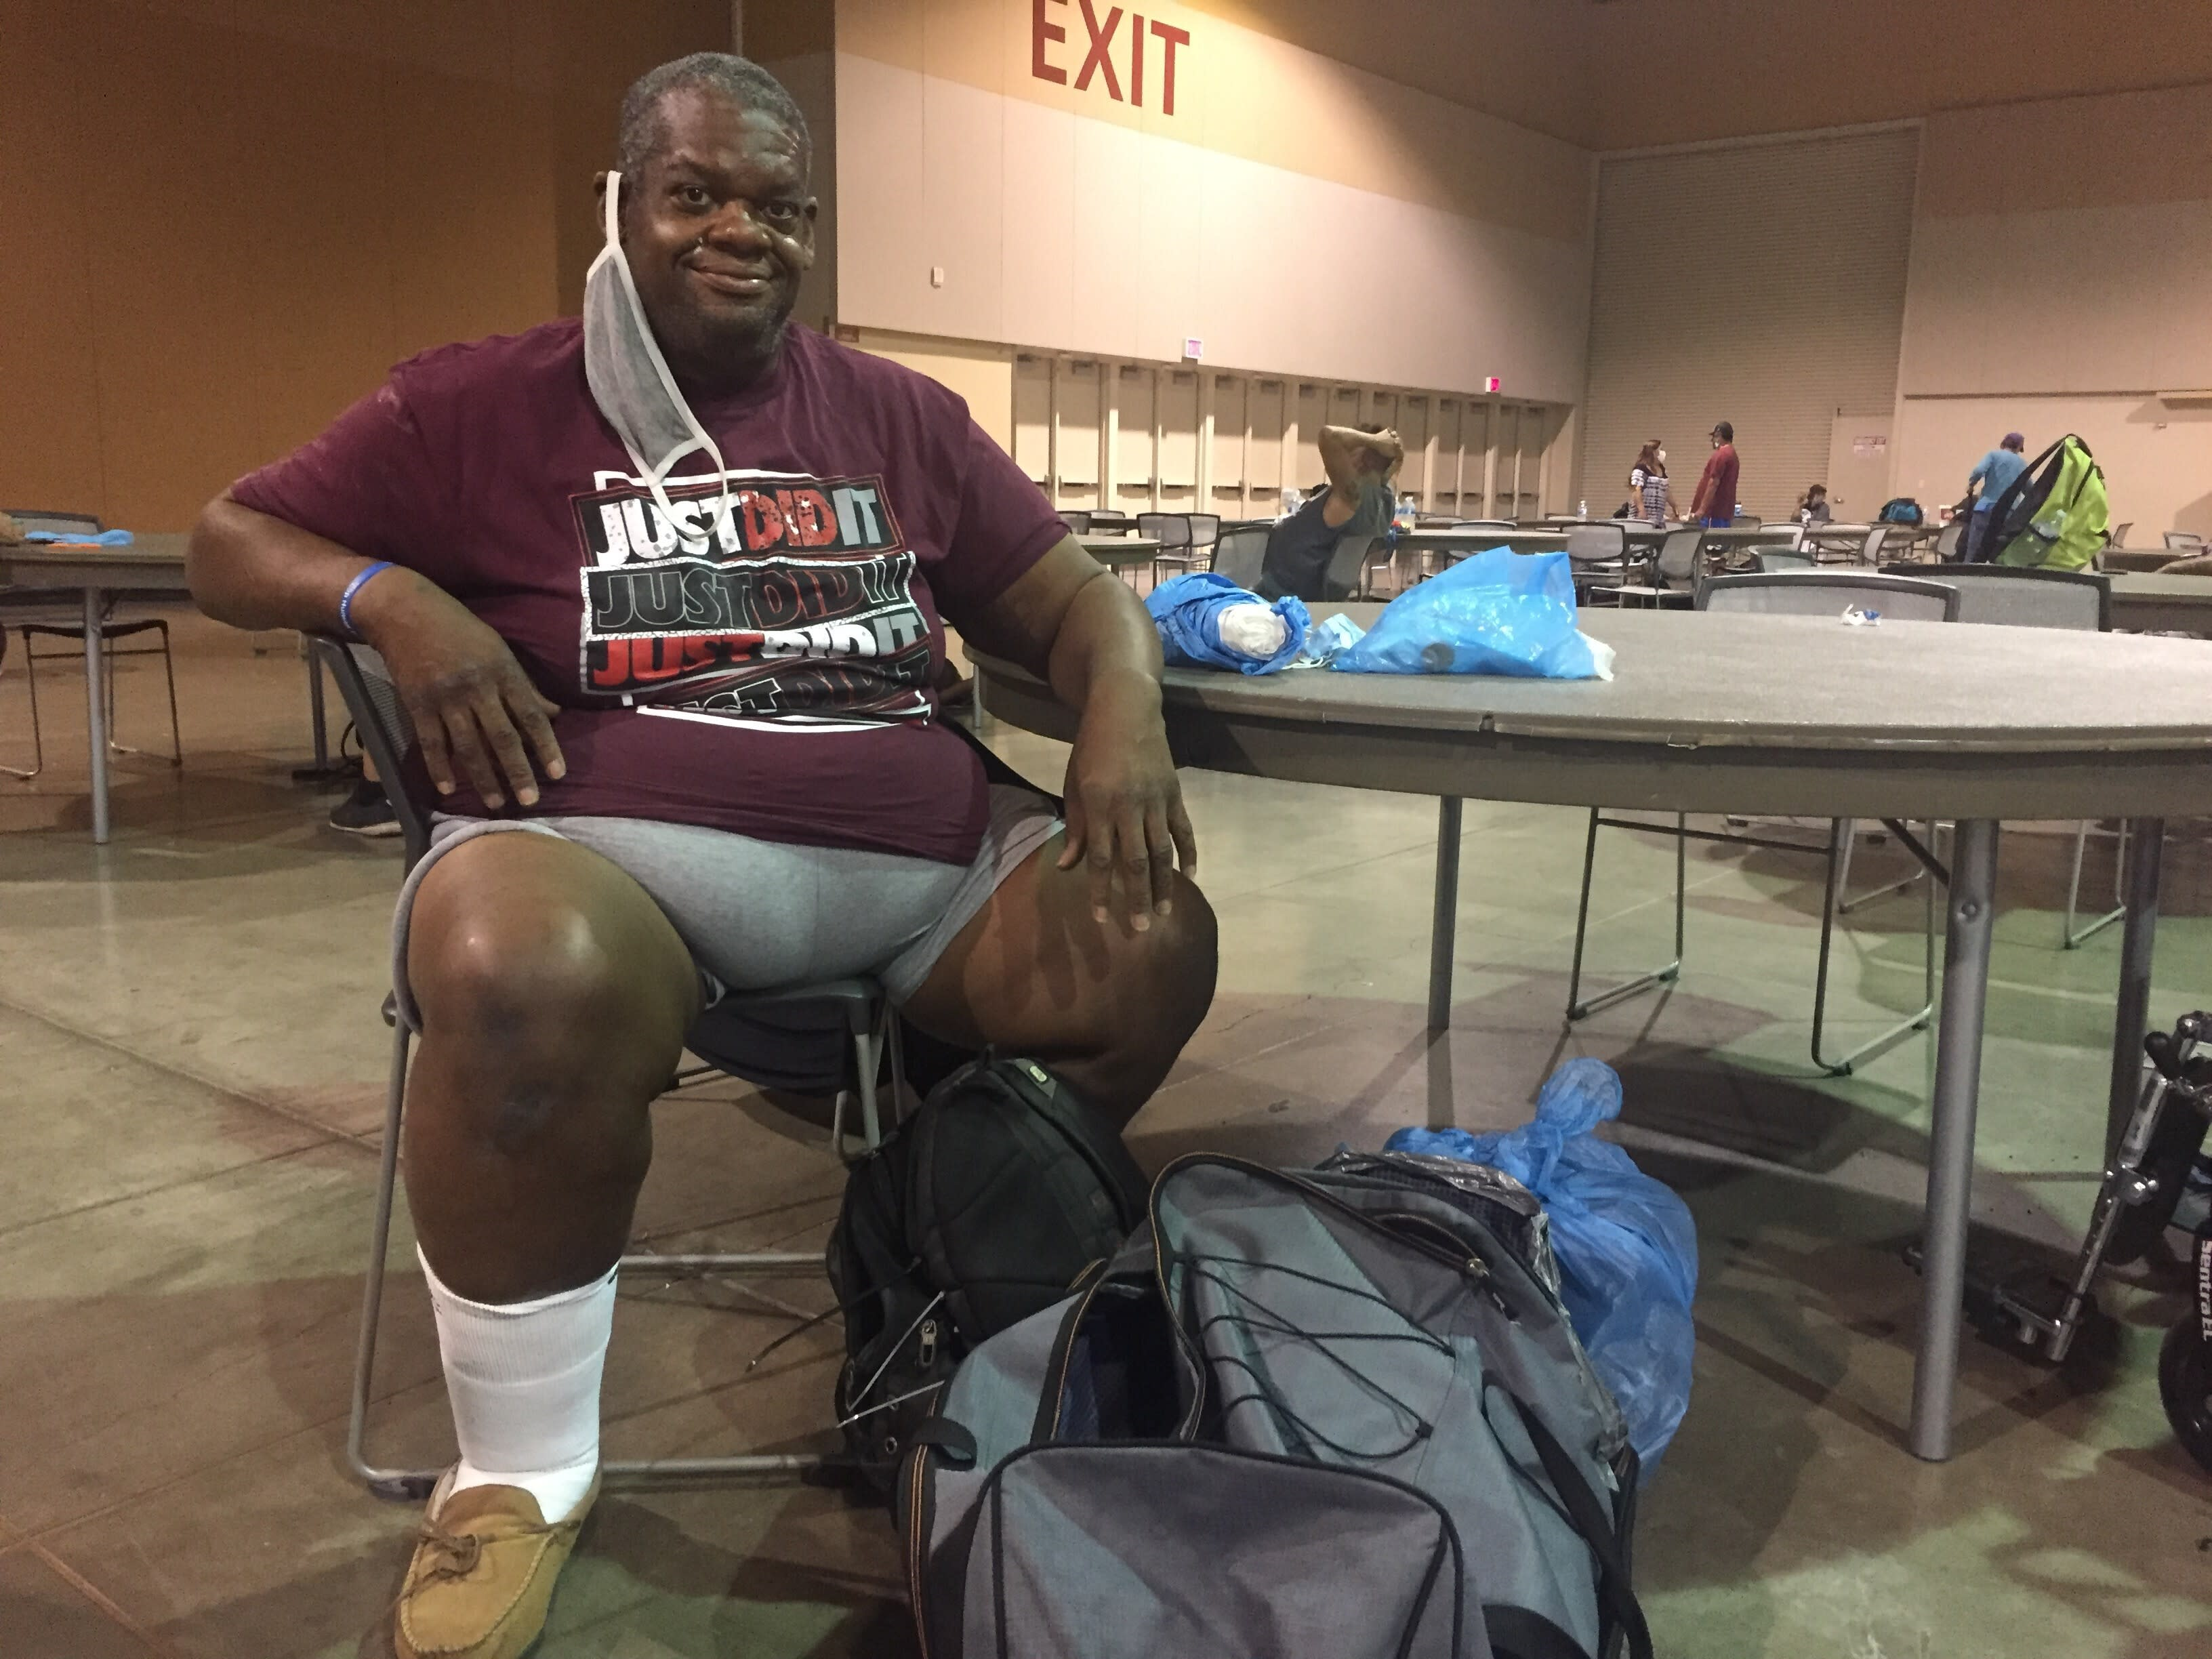 Gary Goodman, 47, rests at the heat respite center at the Phoenix Convention Center on Sept. 1, 2020. Goodman tries to arrive at the center around 9 a.m. and stay until 6 p.m. when he can check into an overnight shelter. (AP Photo/Brian P.D. Hannon)